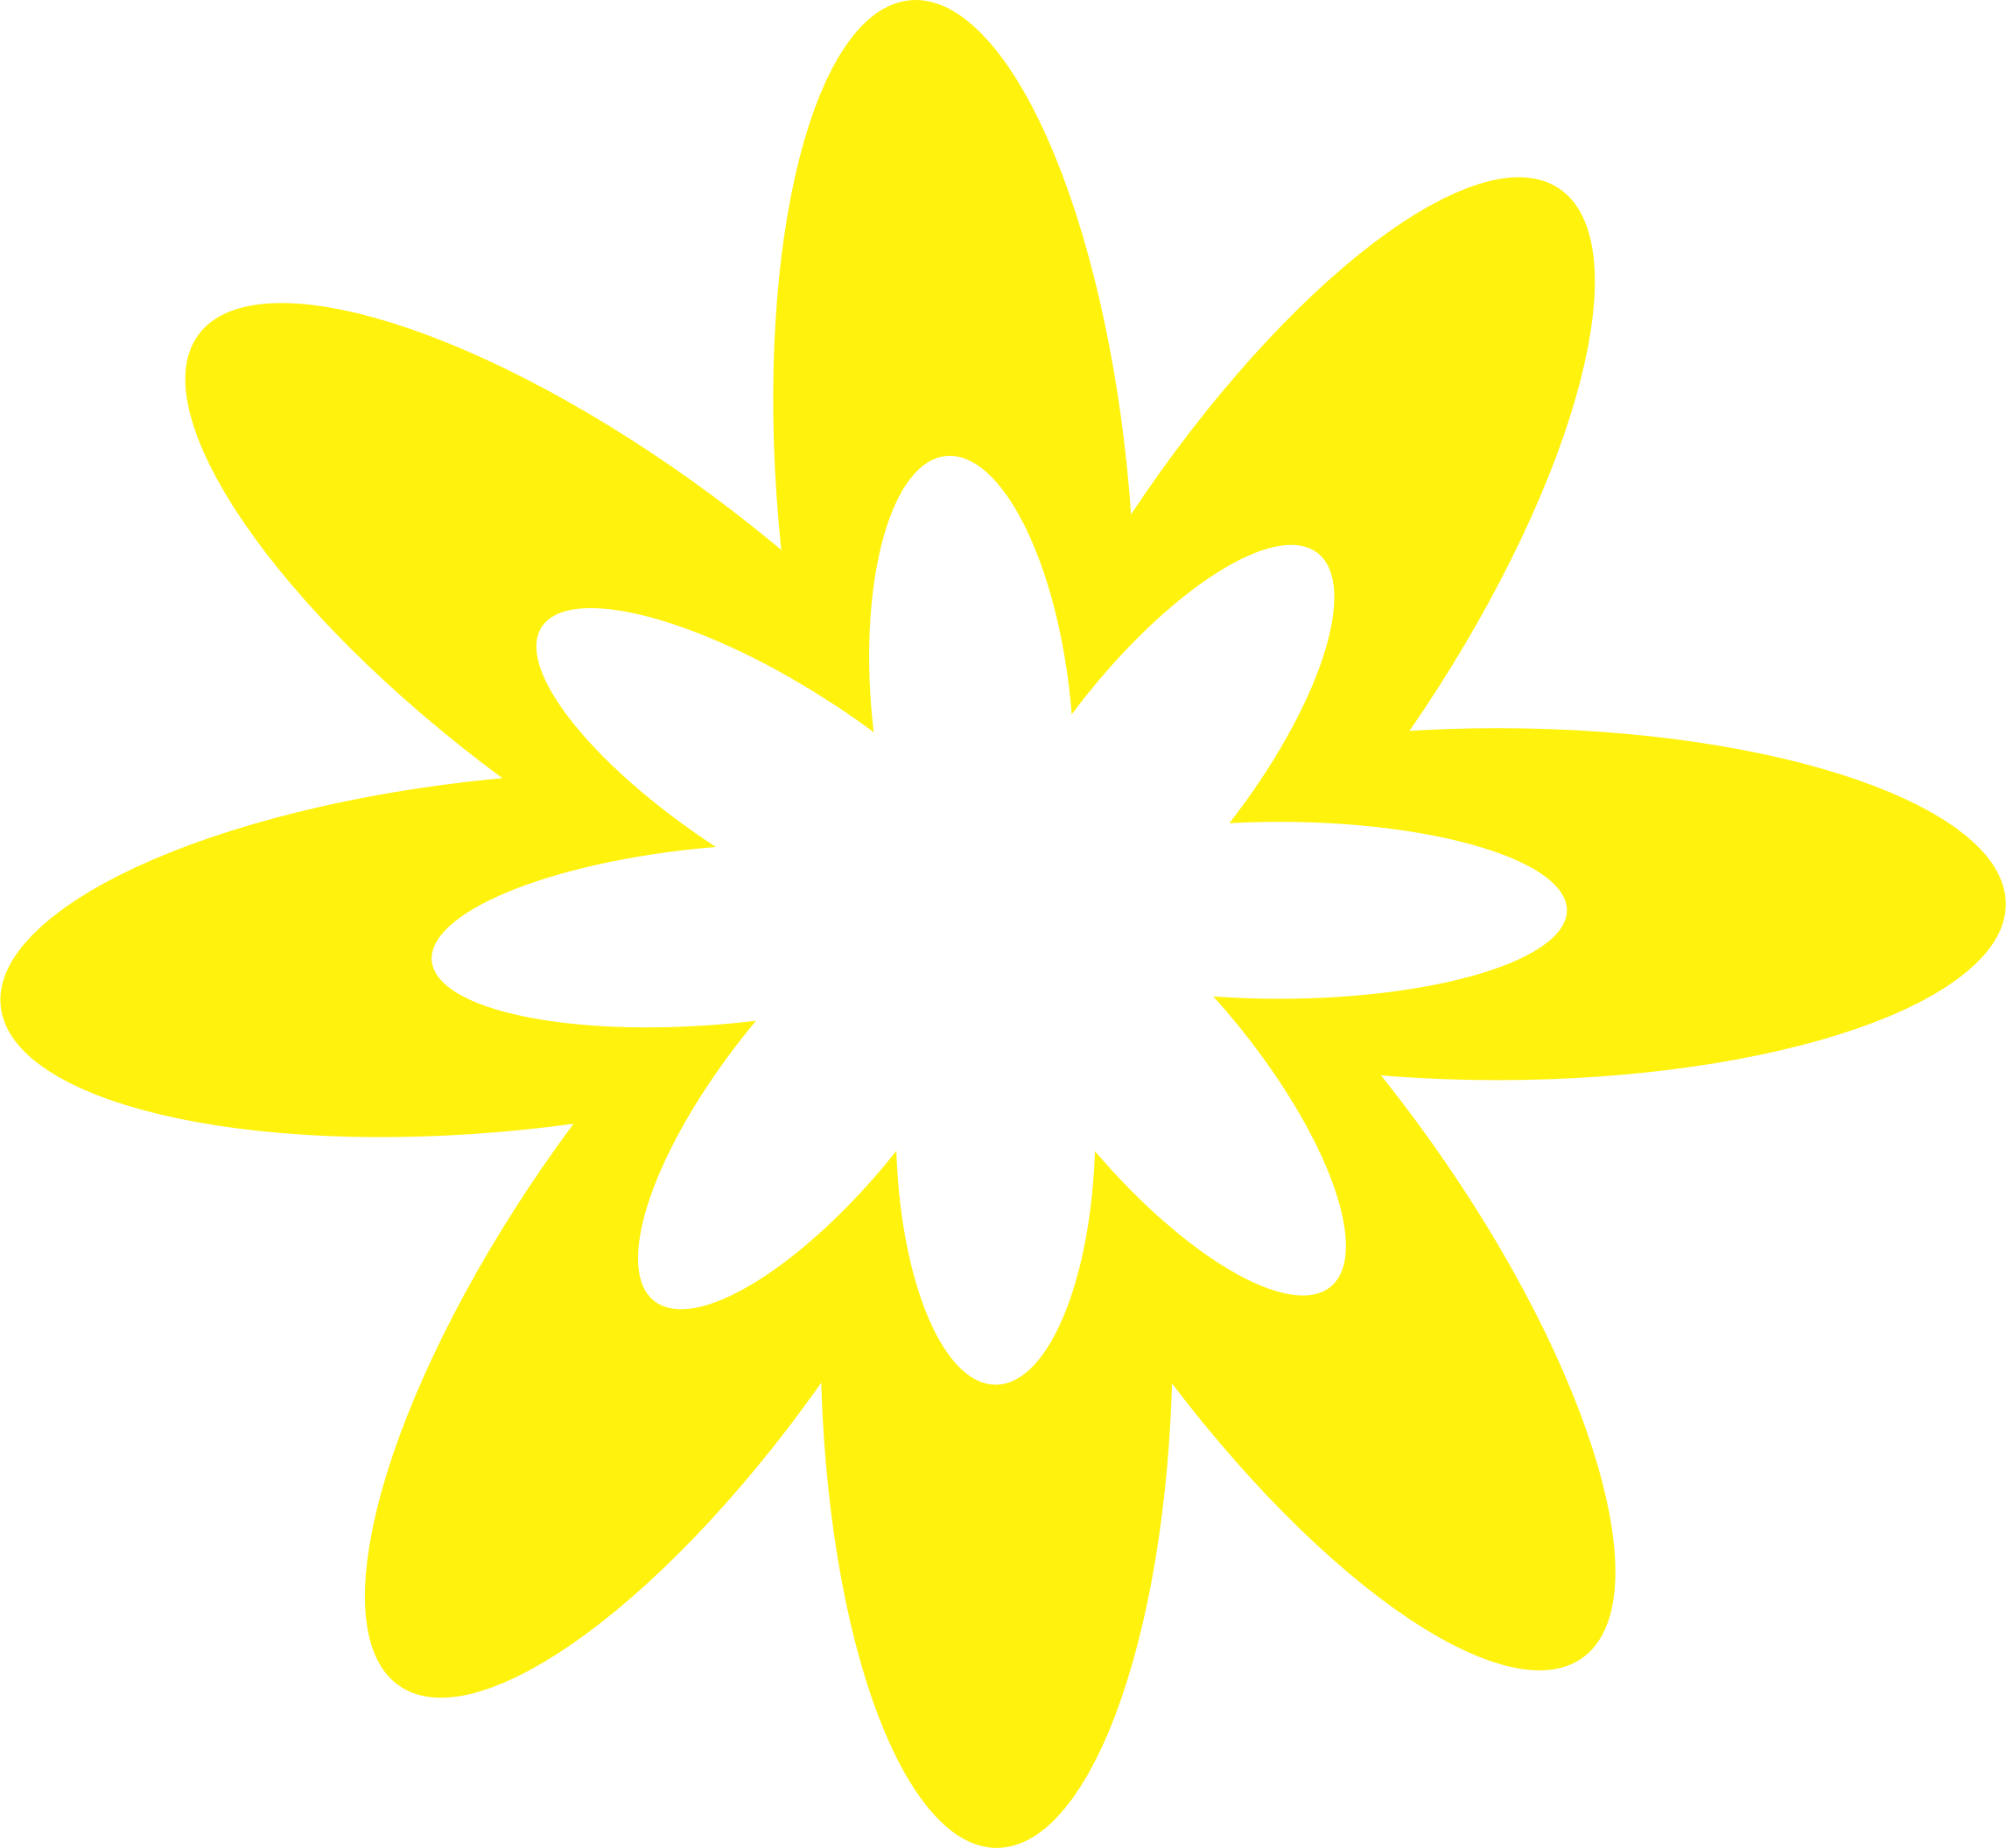 Yellow burst png. Flower icons free and